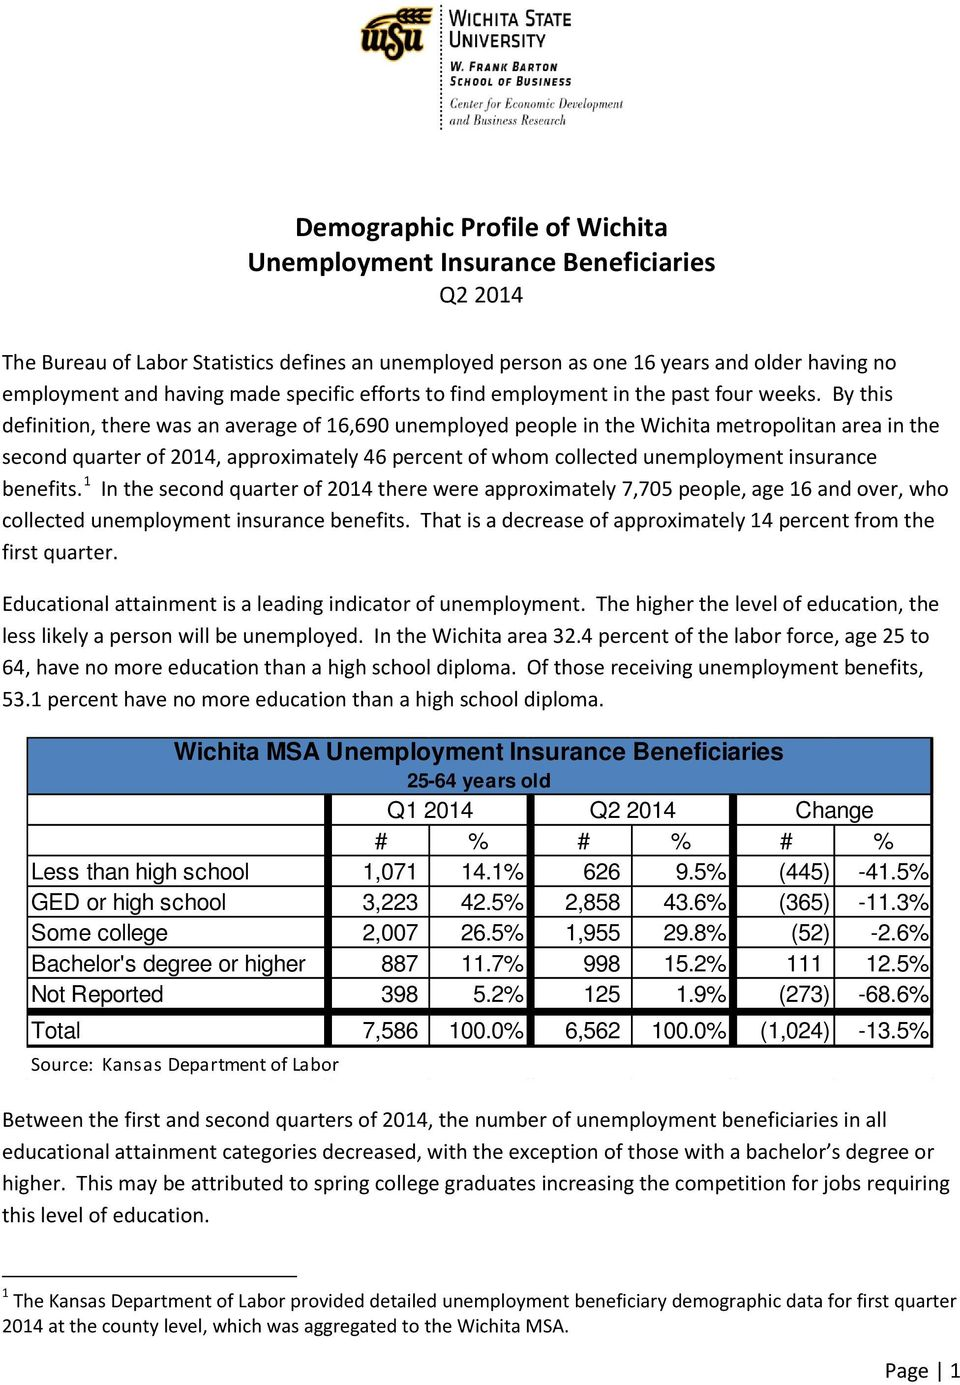 By this definition, there was an average of 16,690 unemployed people in the Wichita metropolitan area in the second quarter of 2014, approximately 46 percent of whom collected unemployment insurance